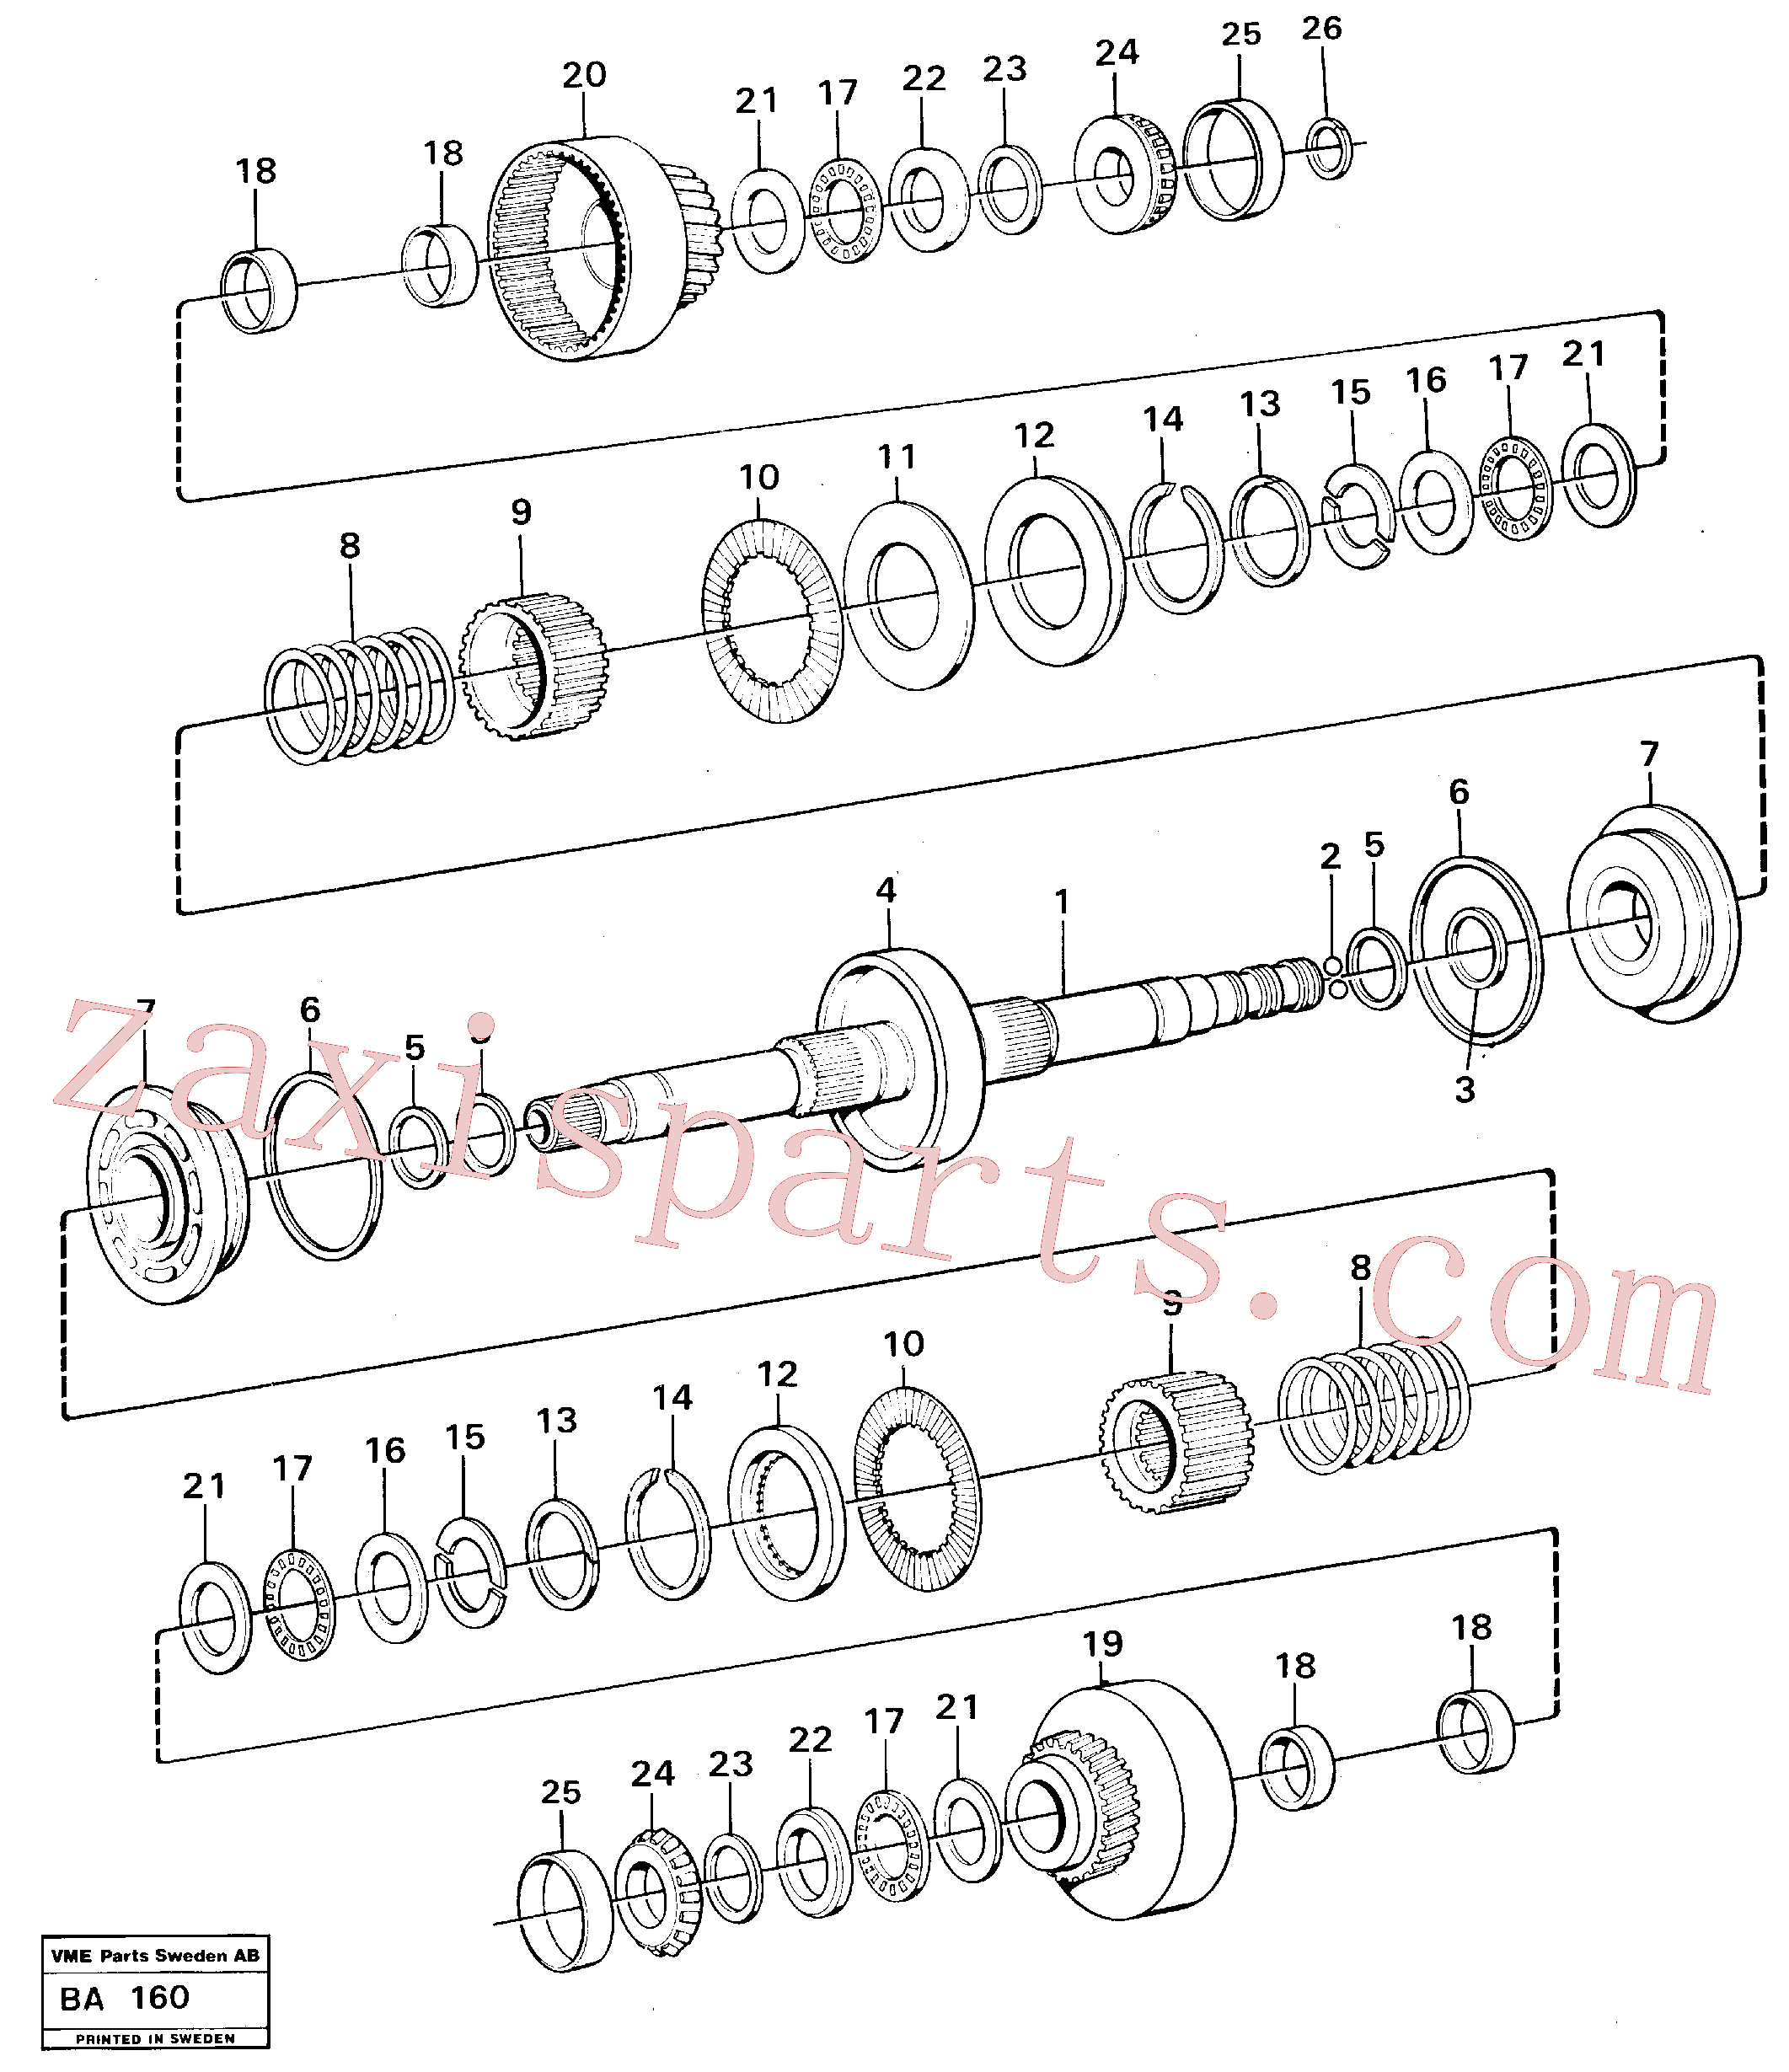 VOE11037147 for Volvo Clutches forward and reverse(BA160 assembly)